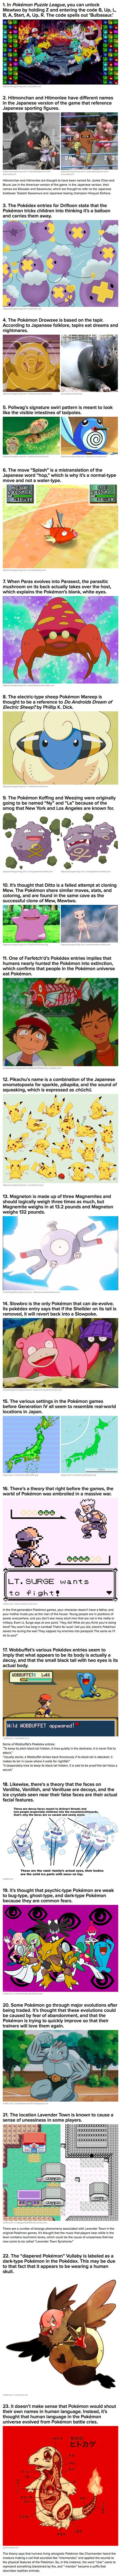 """Pokemon fans rejoice! Here are some interesting facts you may not have known about the franchise."" Some I knew, some I did not."